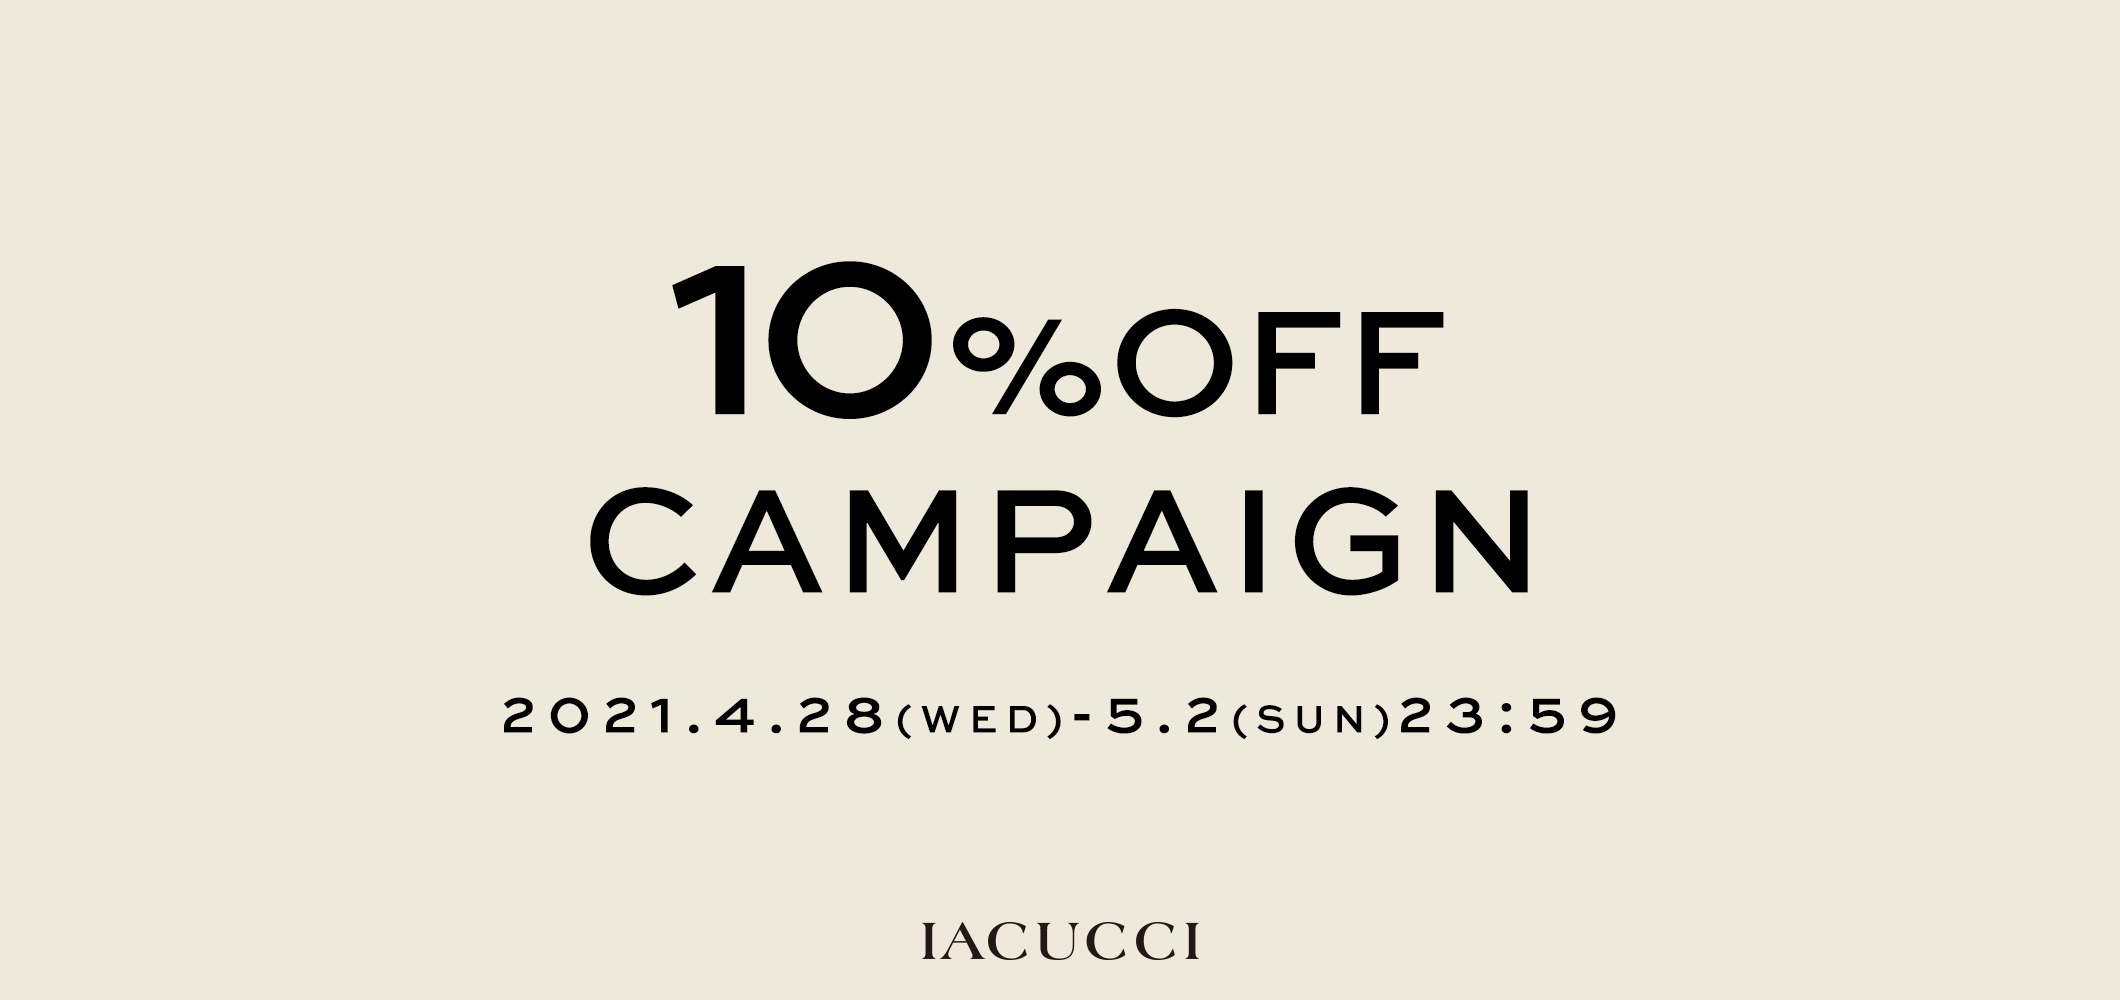 SPECIAL 10%OFF COUPON